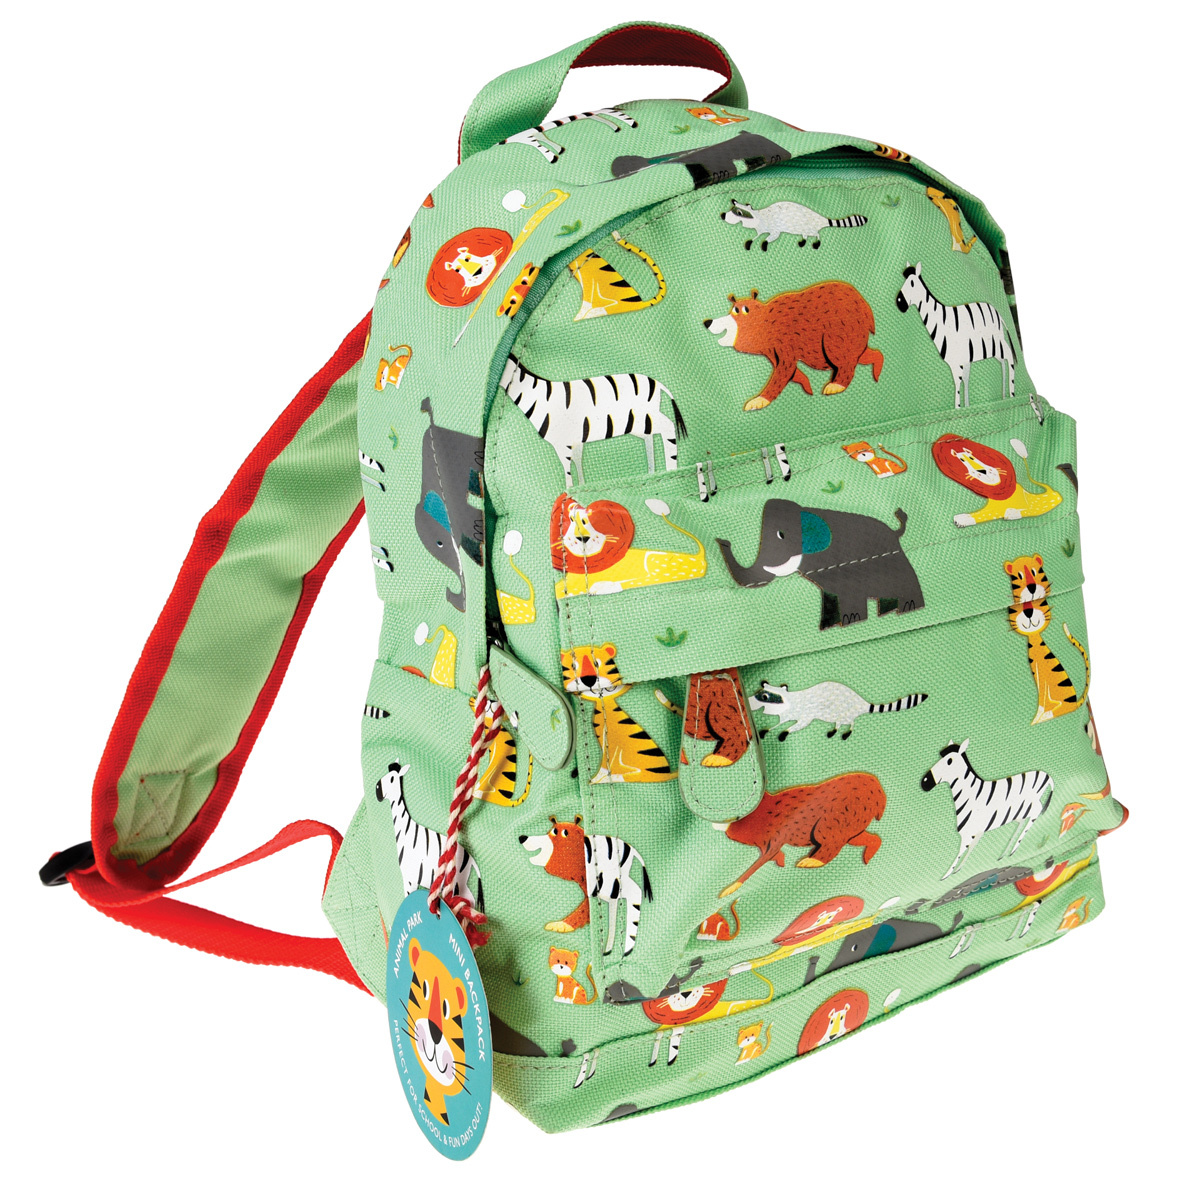 Sac Bagagerie London Dos Sur Park L À Animal Enfant Rex m08nOvwN